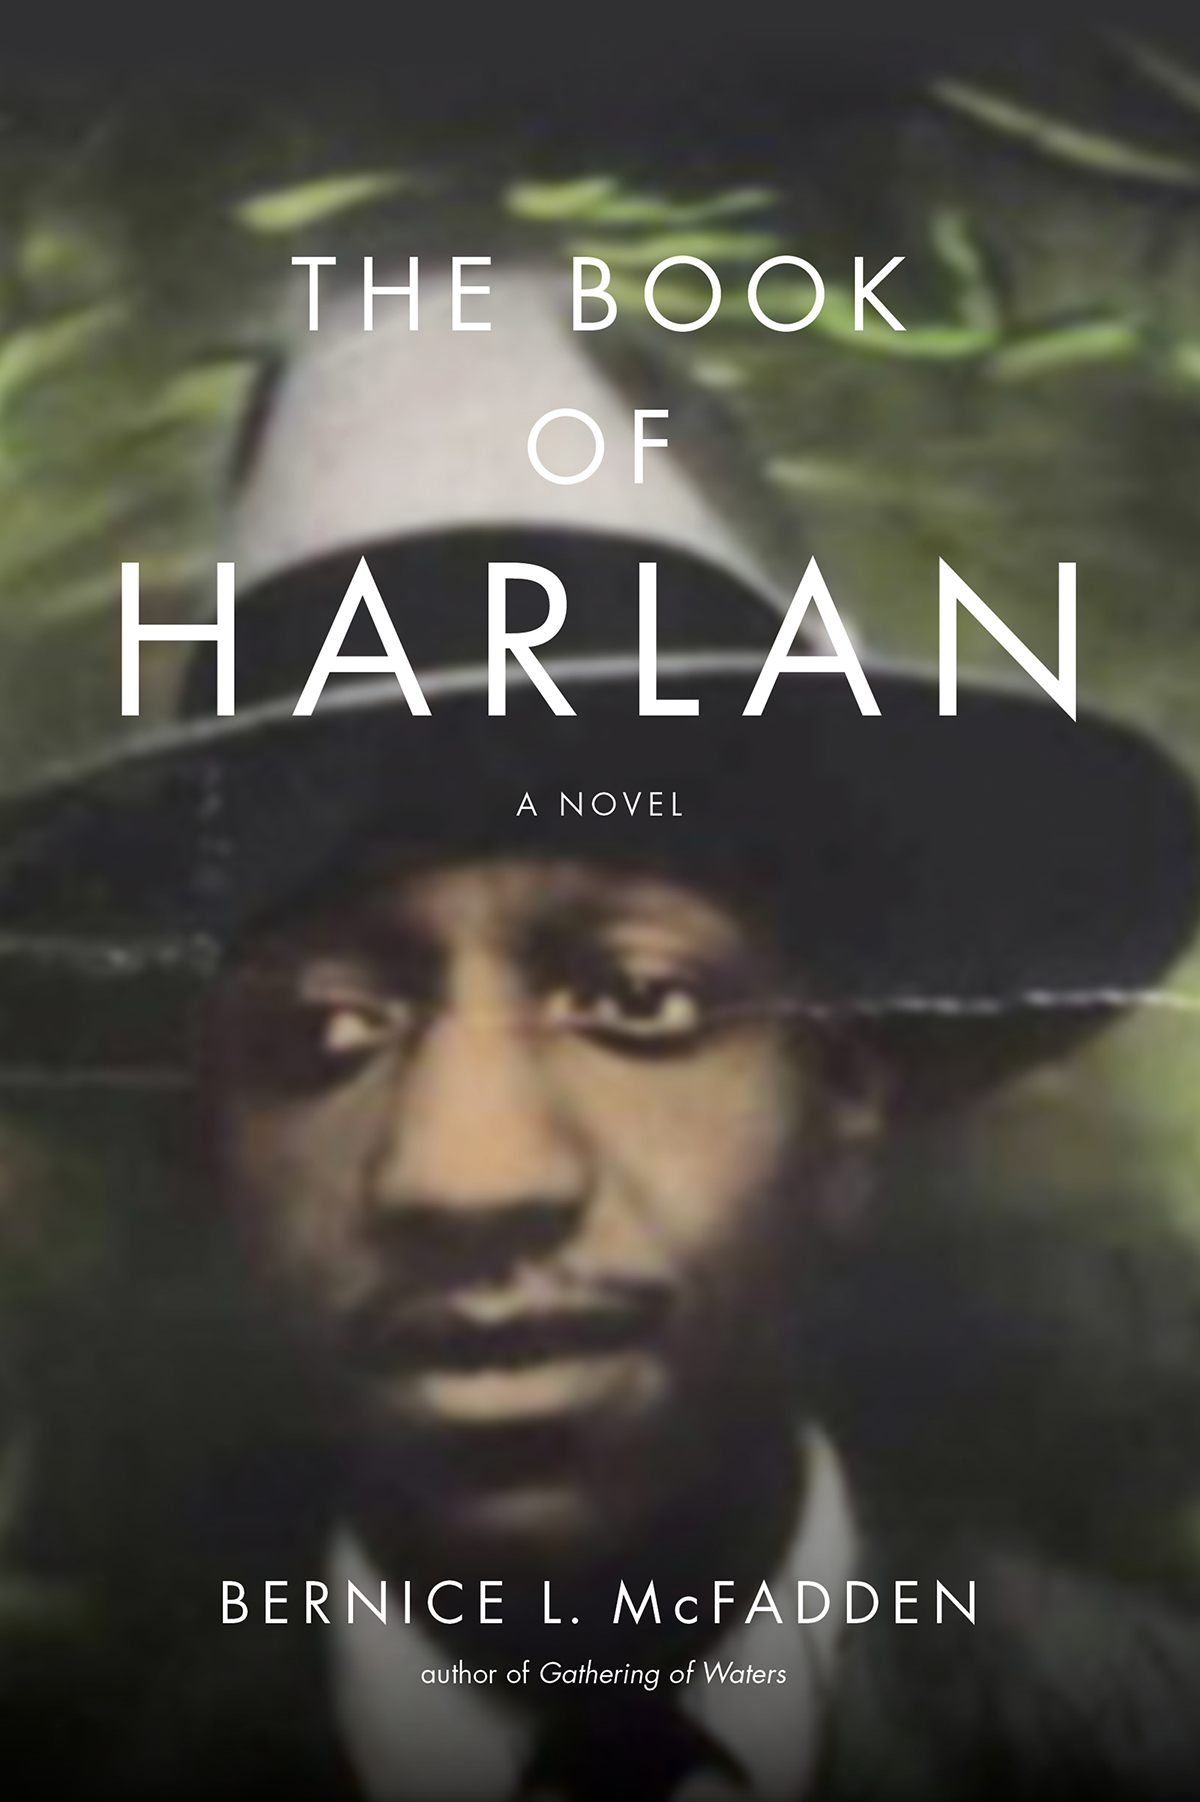 Image: The Book of Harlan